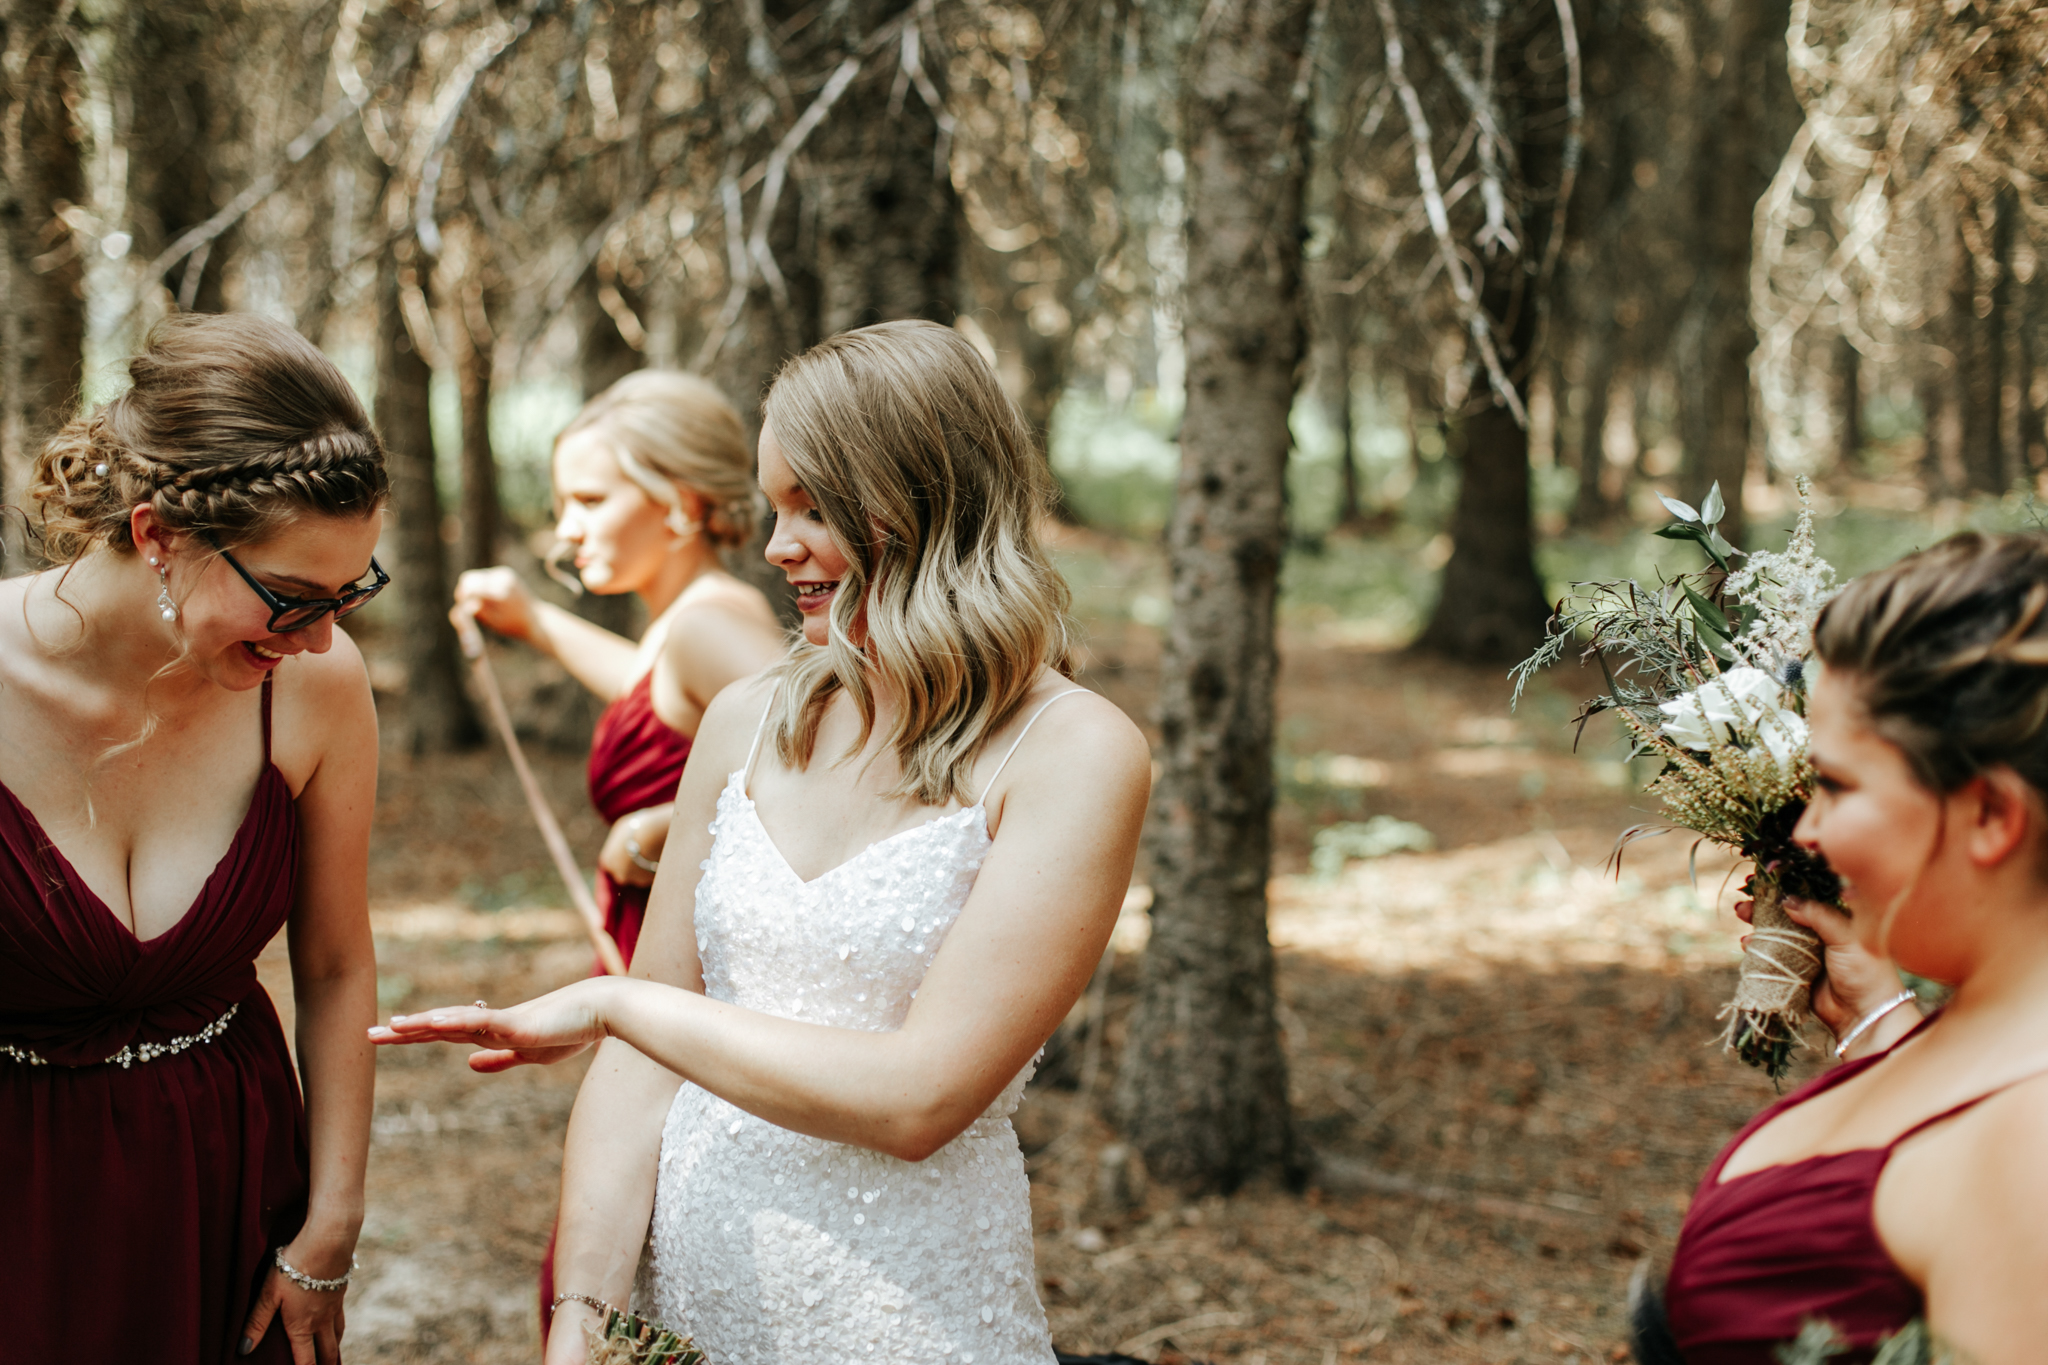 castle-mountain-wedding-photographer-love-and-be-loved-photography-lethbridge-pincher-creek-crowsnest-pass-yannick-rylee-photo-image-picture-99.jpg